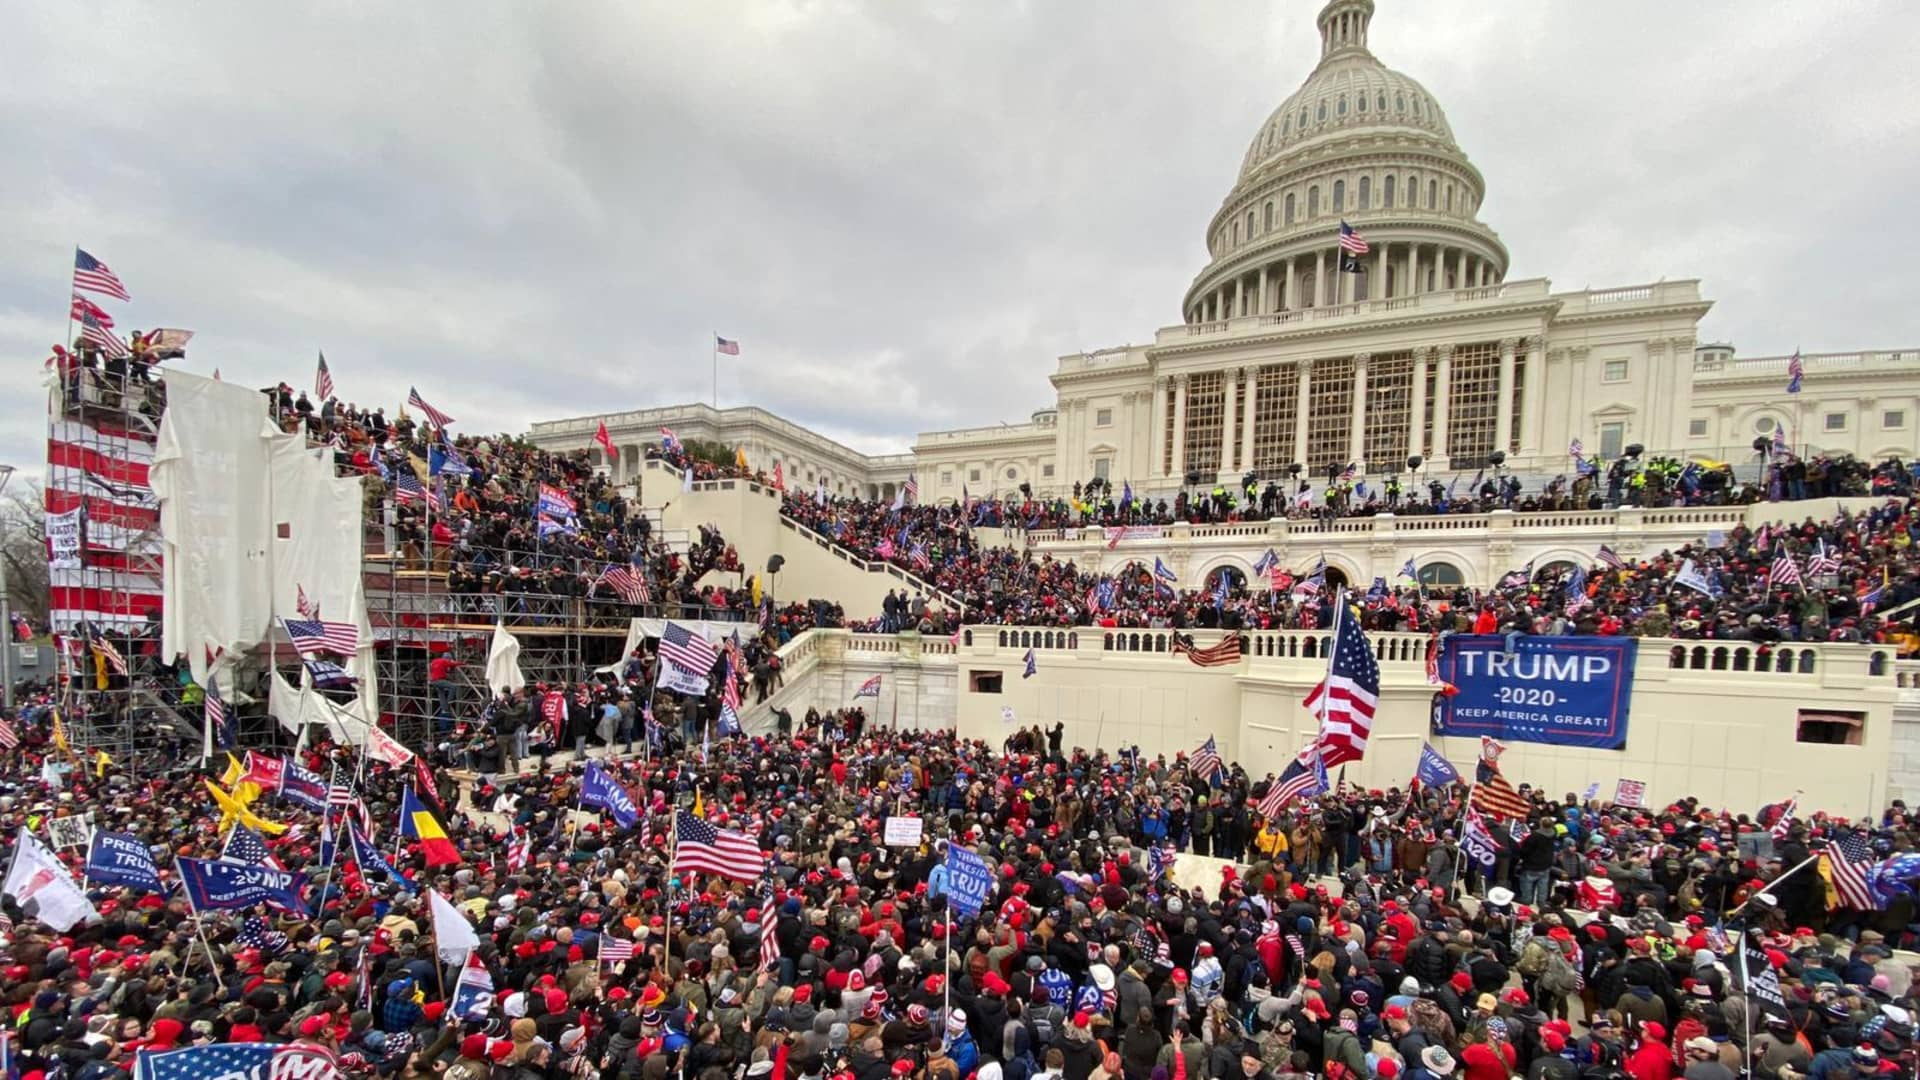 U.S. President Donald Trump's supporters gather outside the Capitol building in Washington D.C. on Jan. 6, 2021.